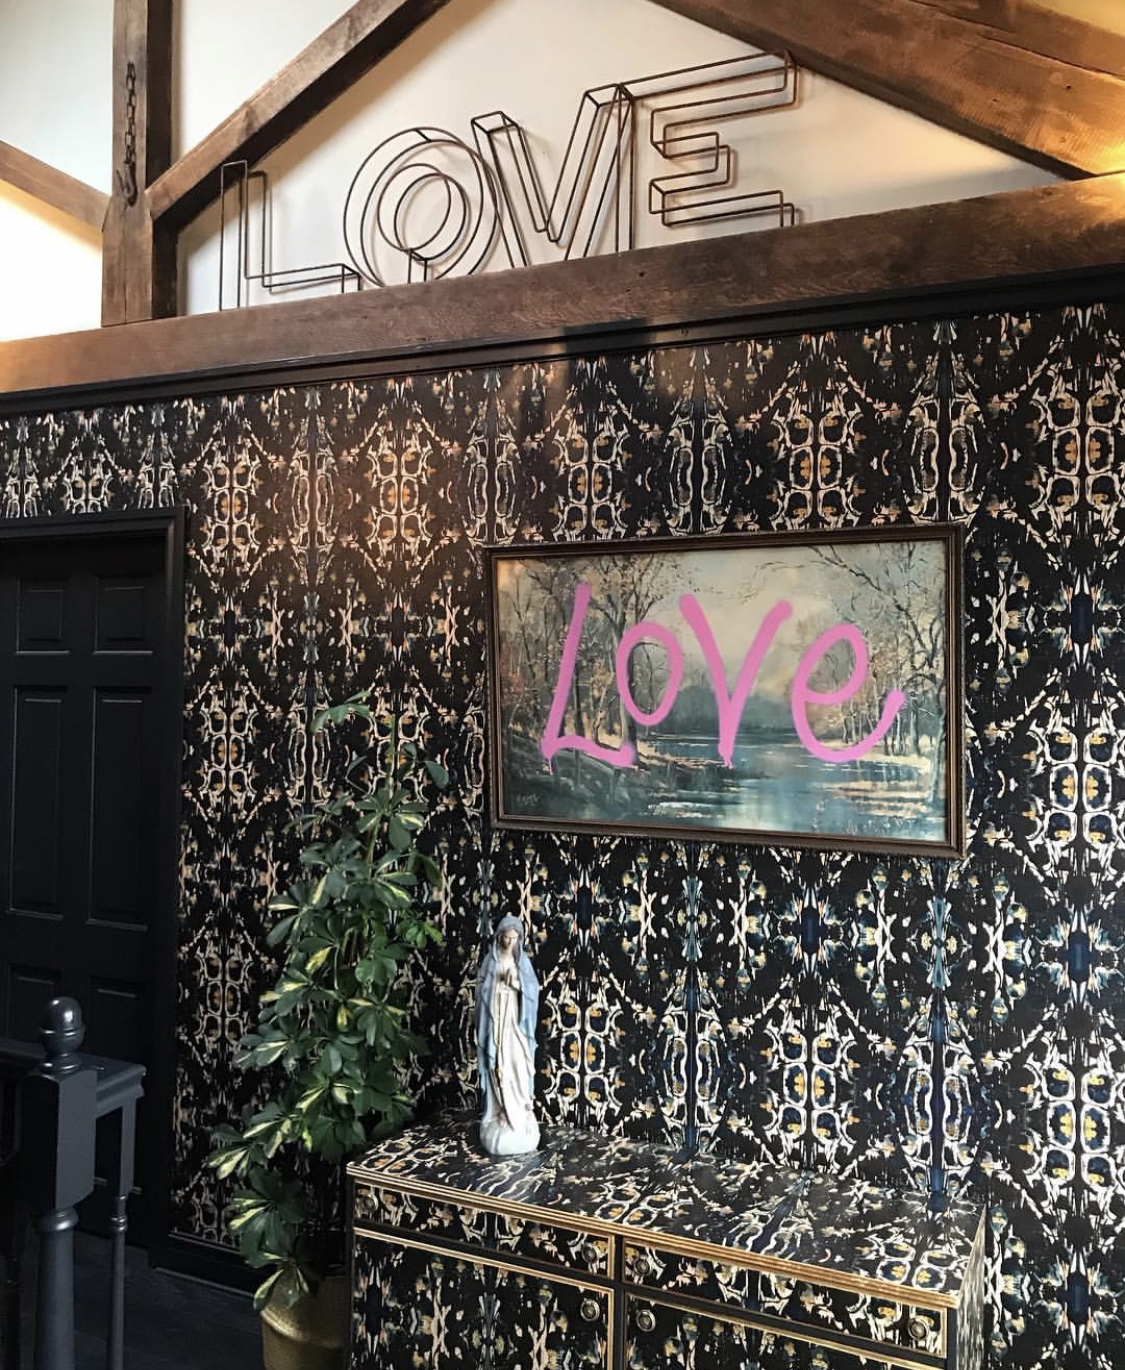 Our landing - Graffiti LOVE art by @mucknbrass, Vintage letters by @theenglishpolisher